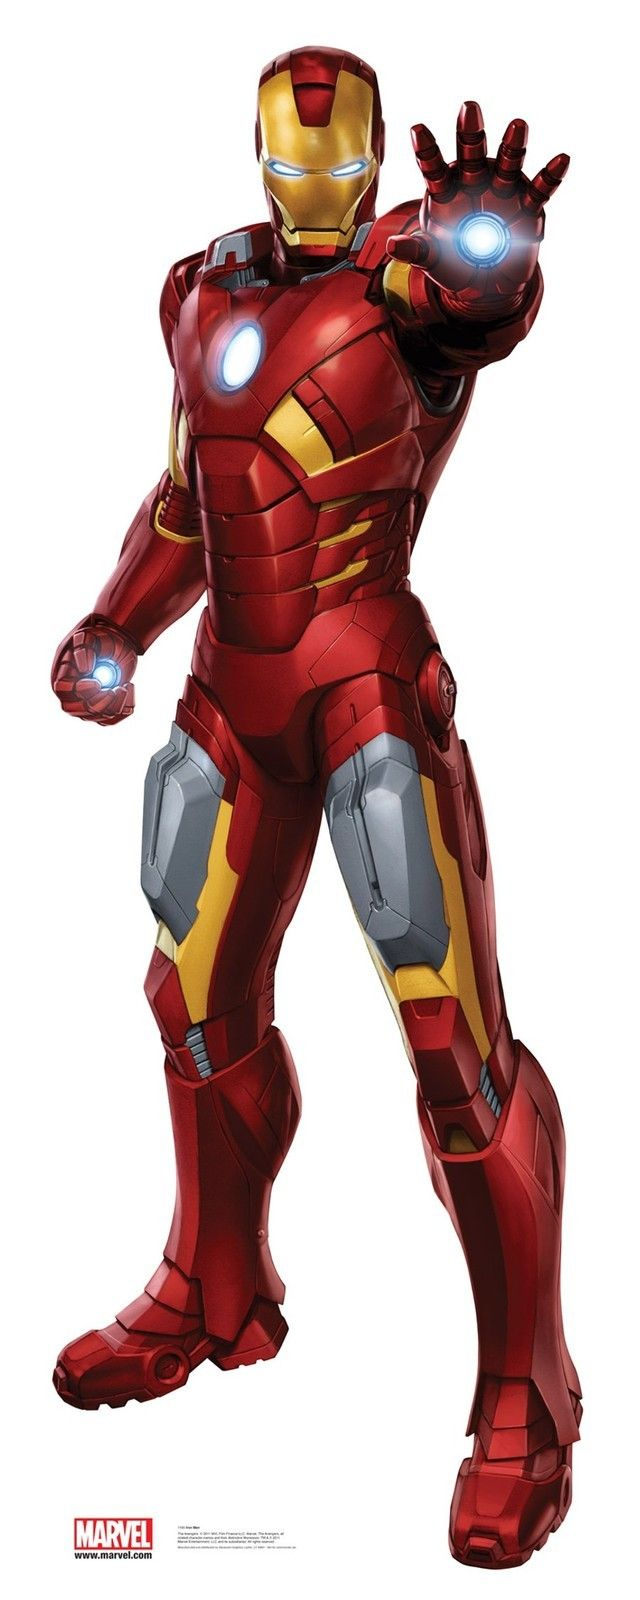 Iron Man- The Avengers